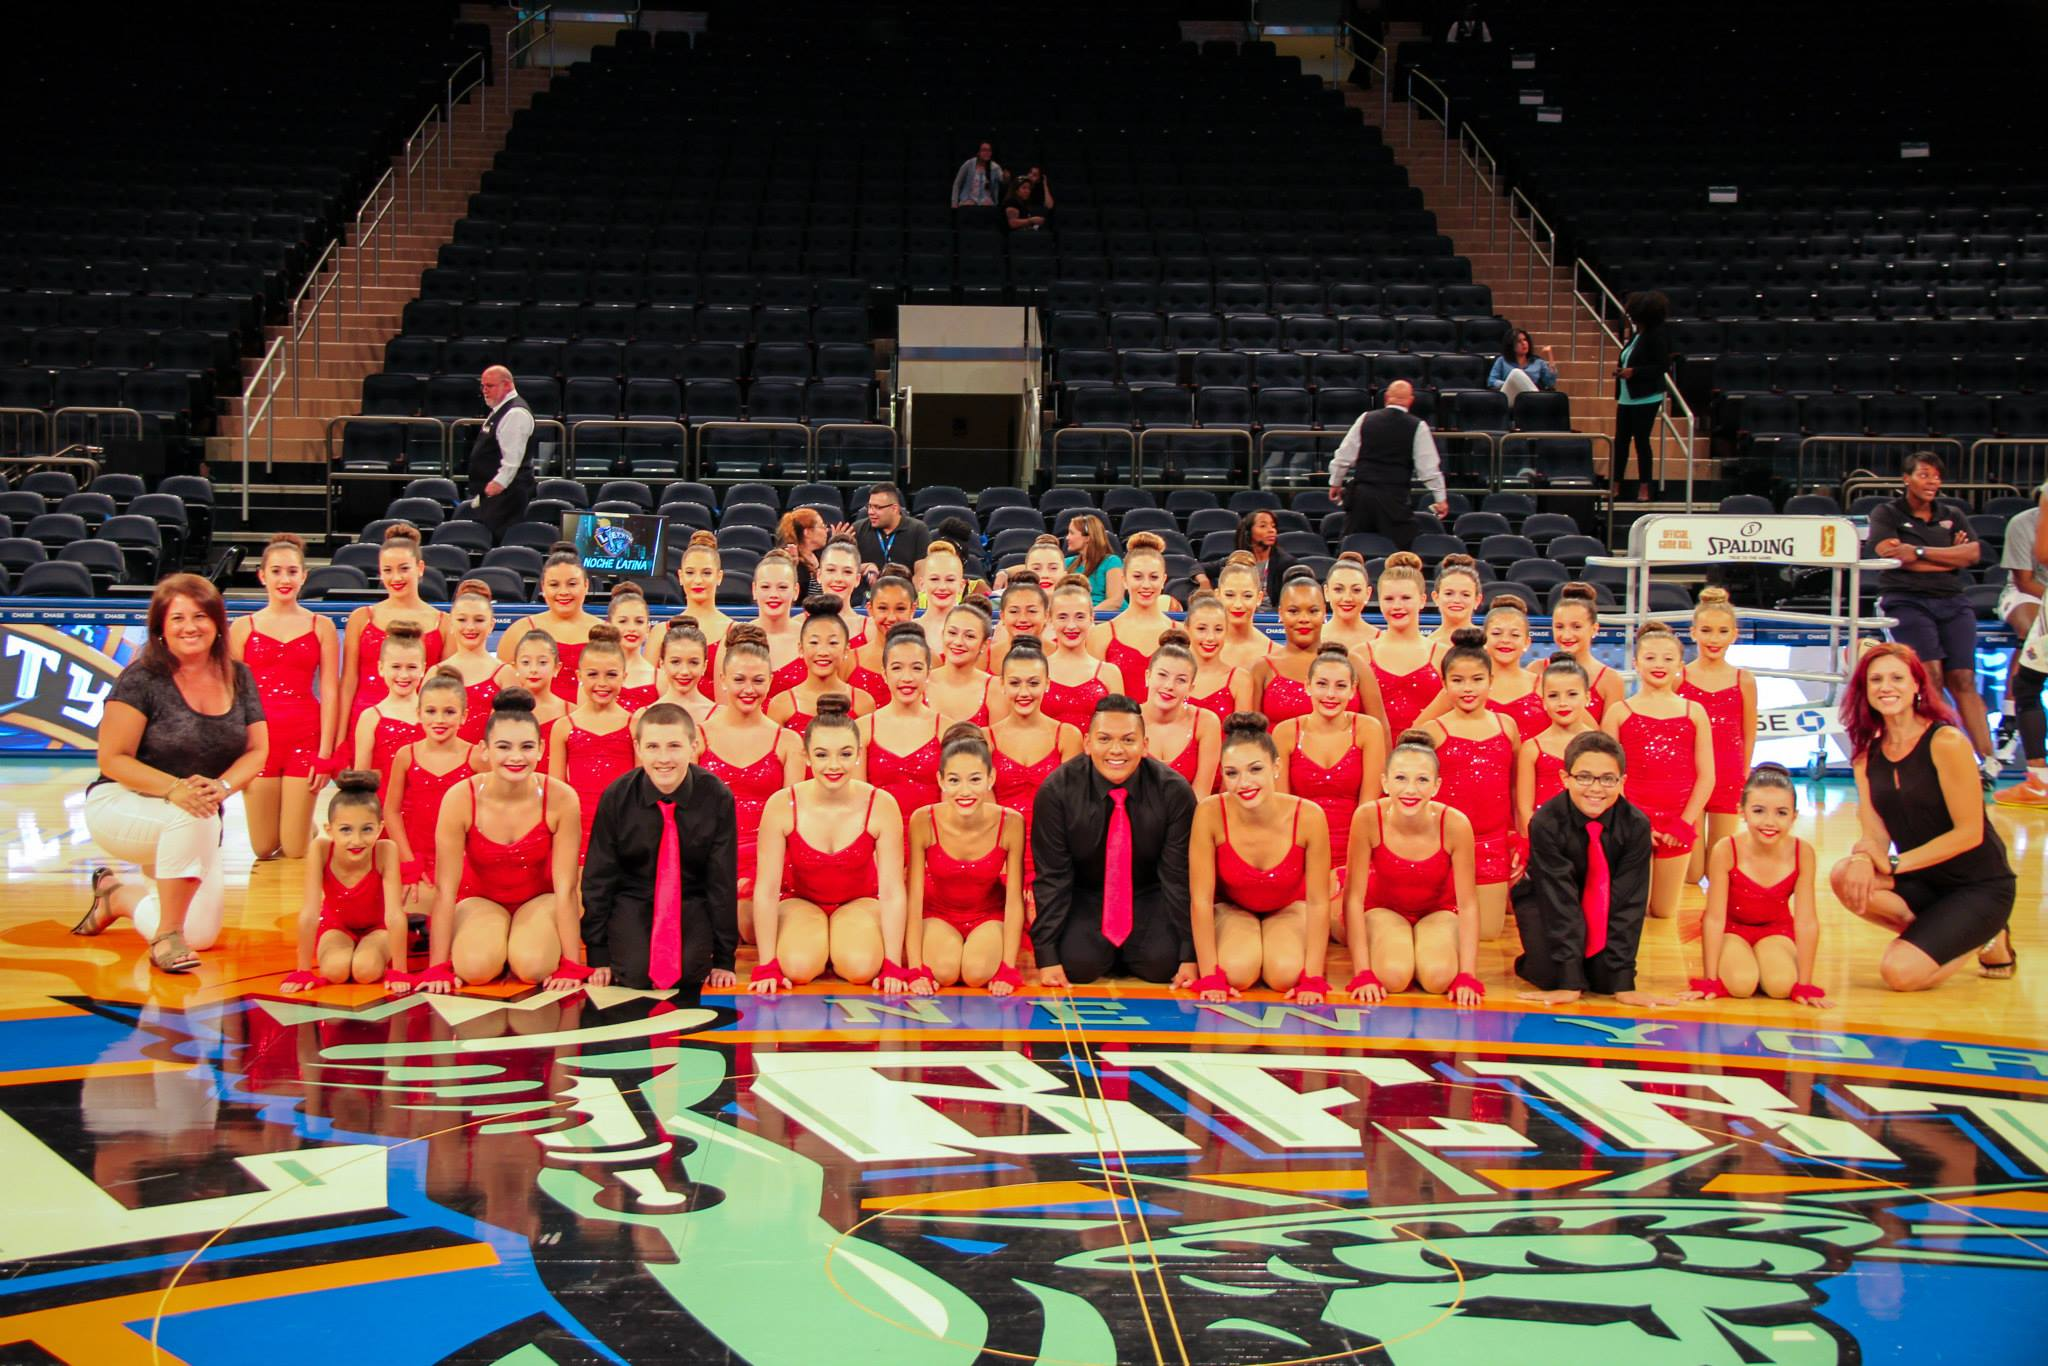 RCDC @ Madison Square Garden Halftime Performance 2014